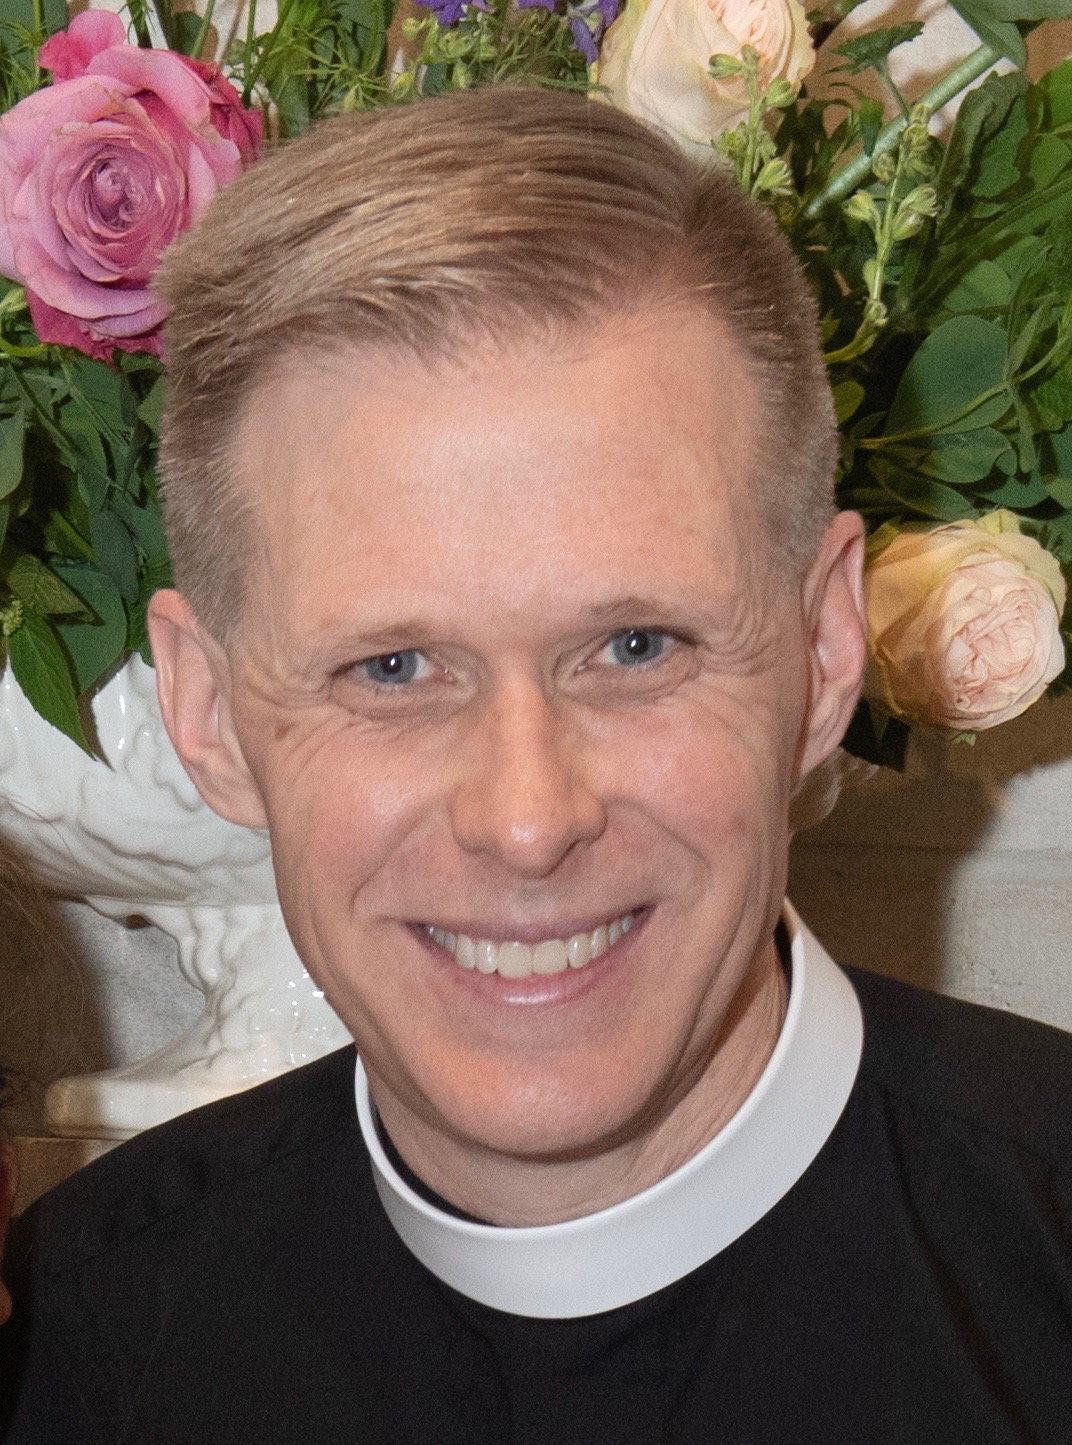 The Rev. Dr. Kurt Gerhard